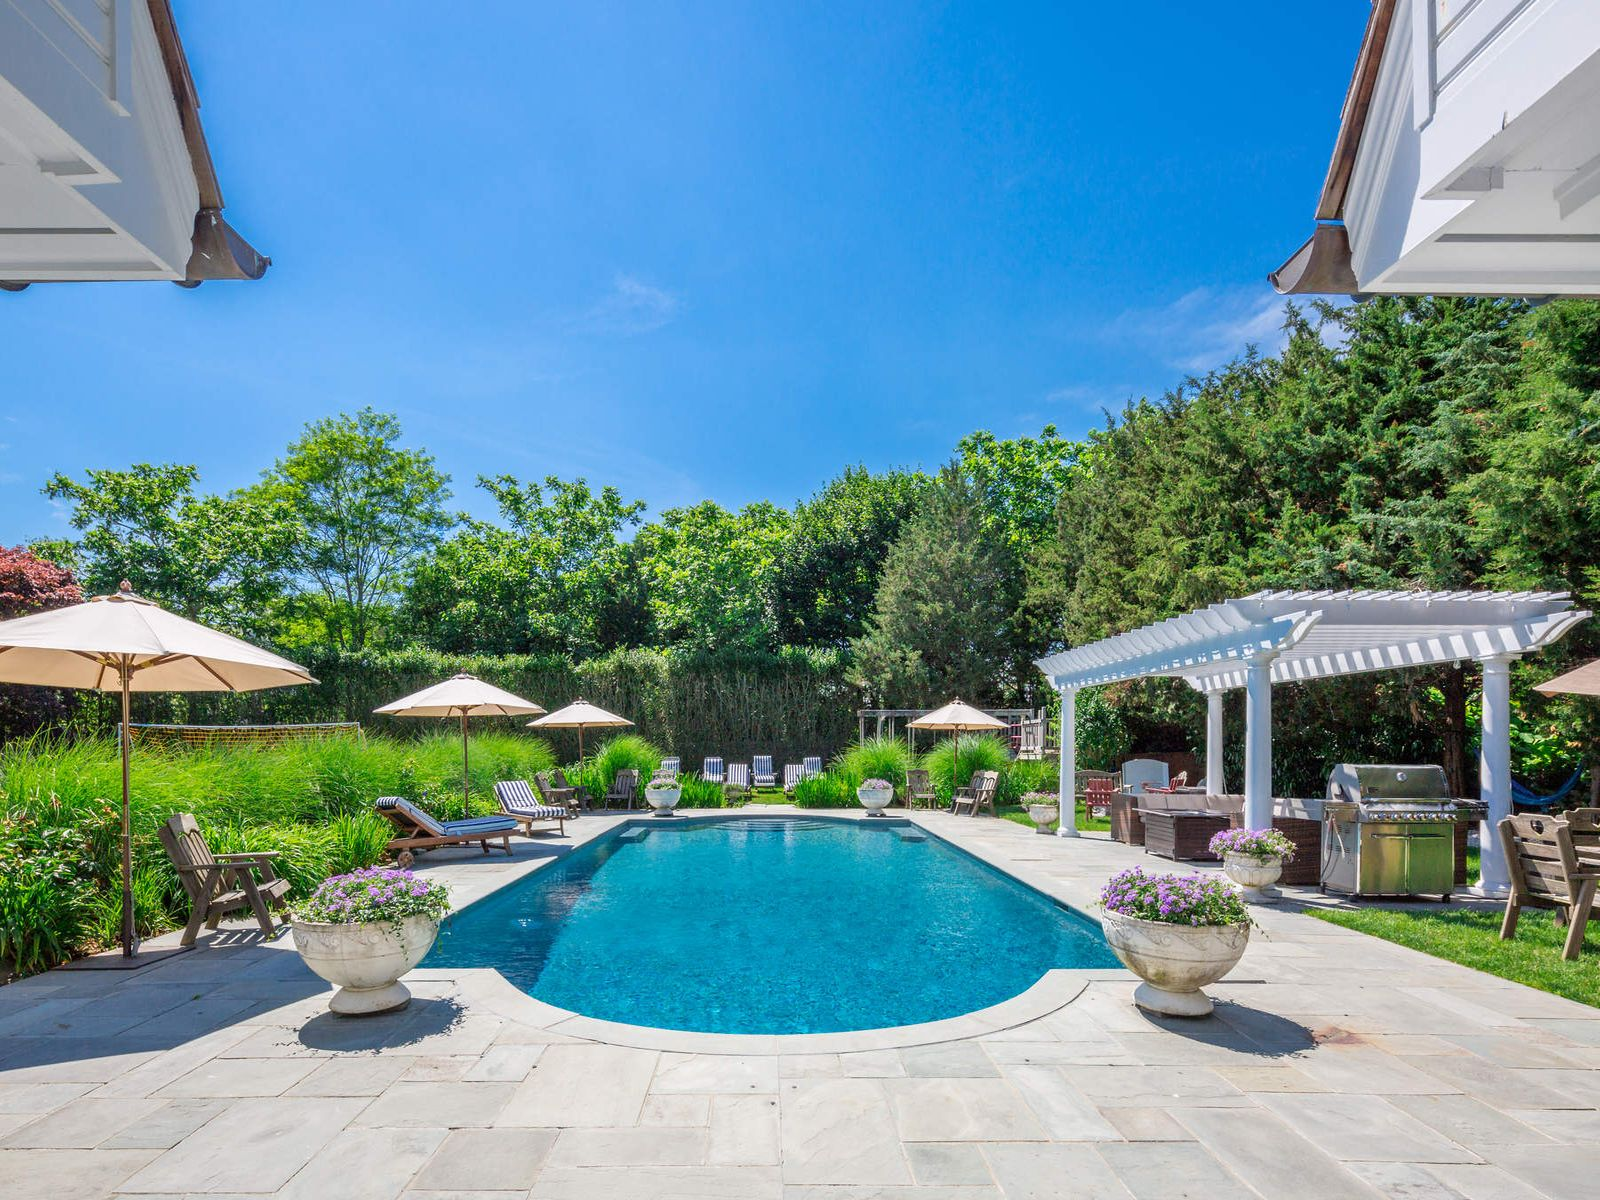 7 Bedroom 10 Baths Home in the Village, Southampton NY Single Family Home - Hamptons Real Estate